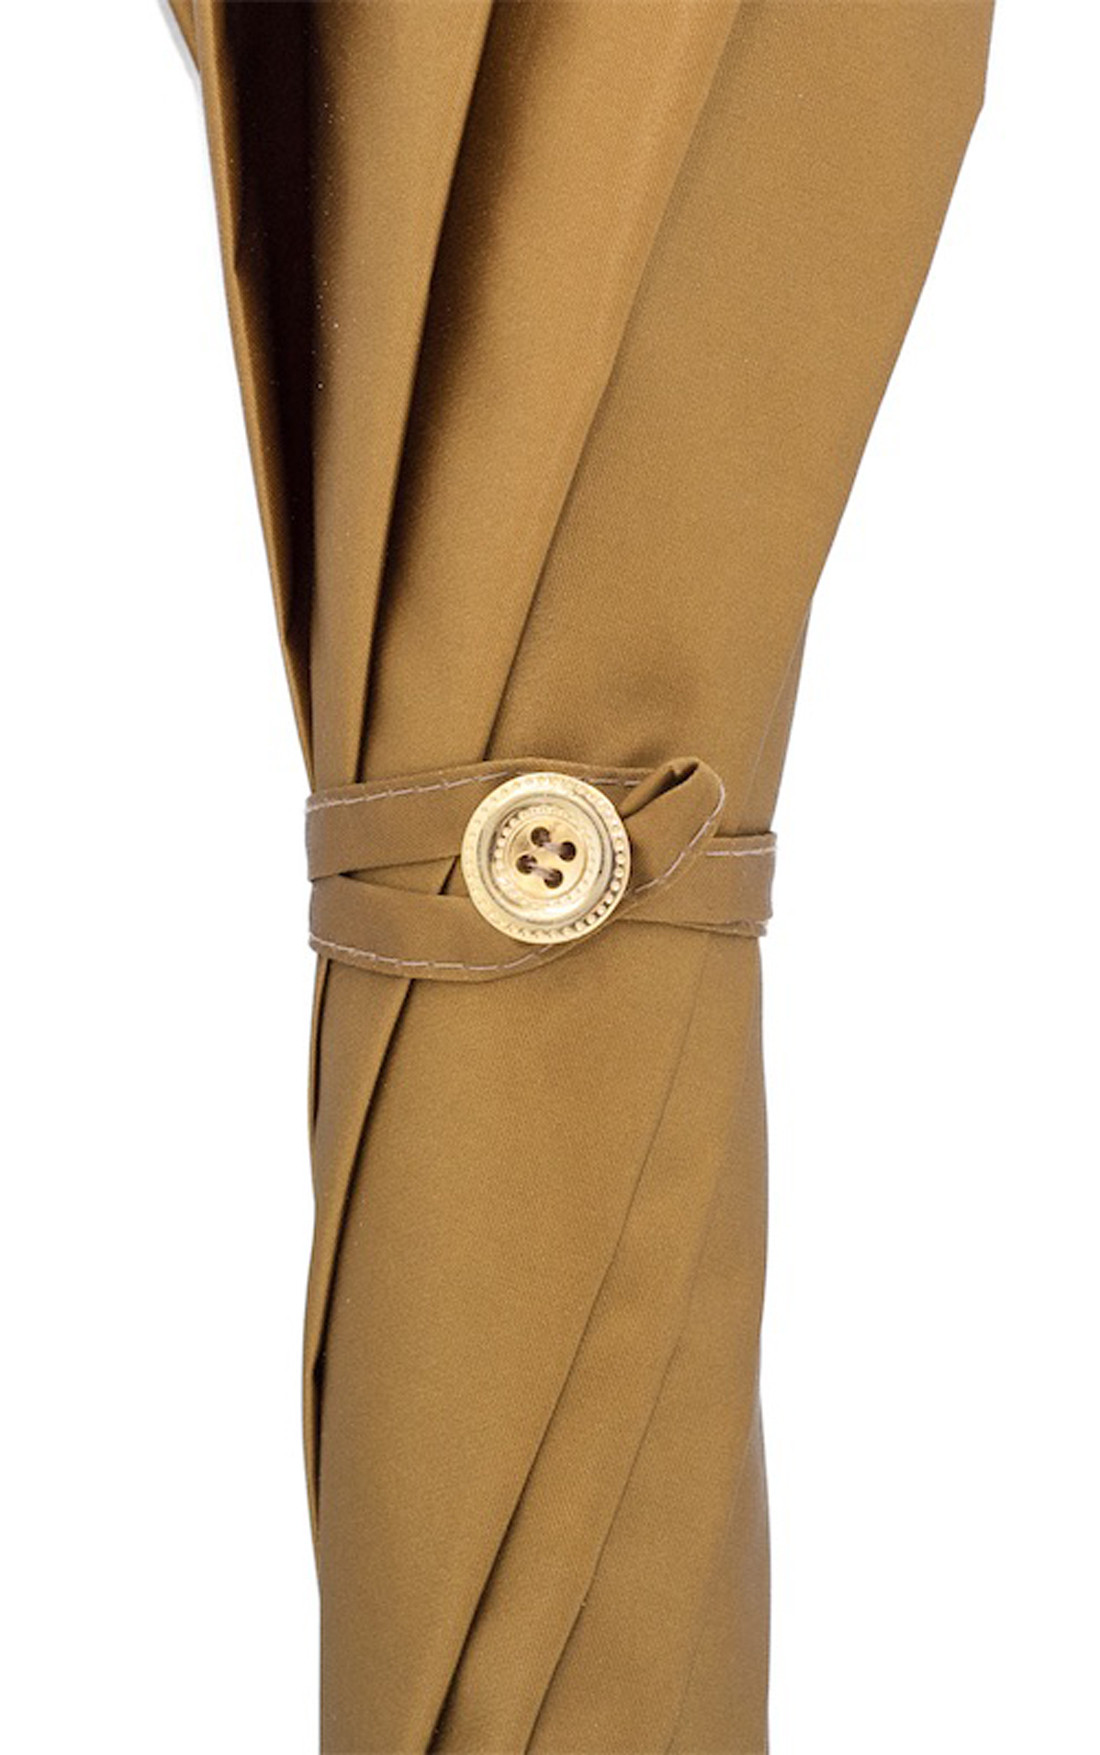 Pasotti - Gold Khaki Umbrella with Gold Lion (460-OMBRELLO-ESCLUSIVO-61/8/10-21284/5-W37-TESTINA-ORO)